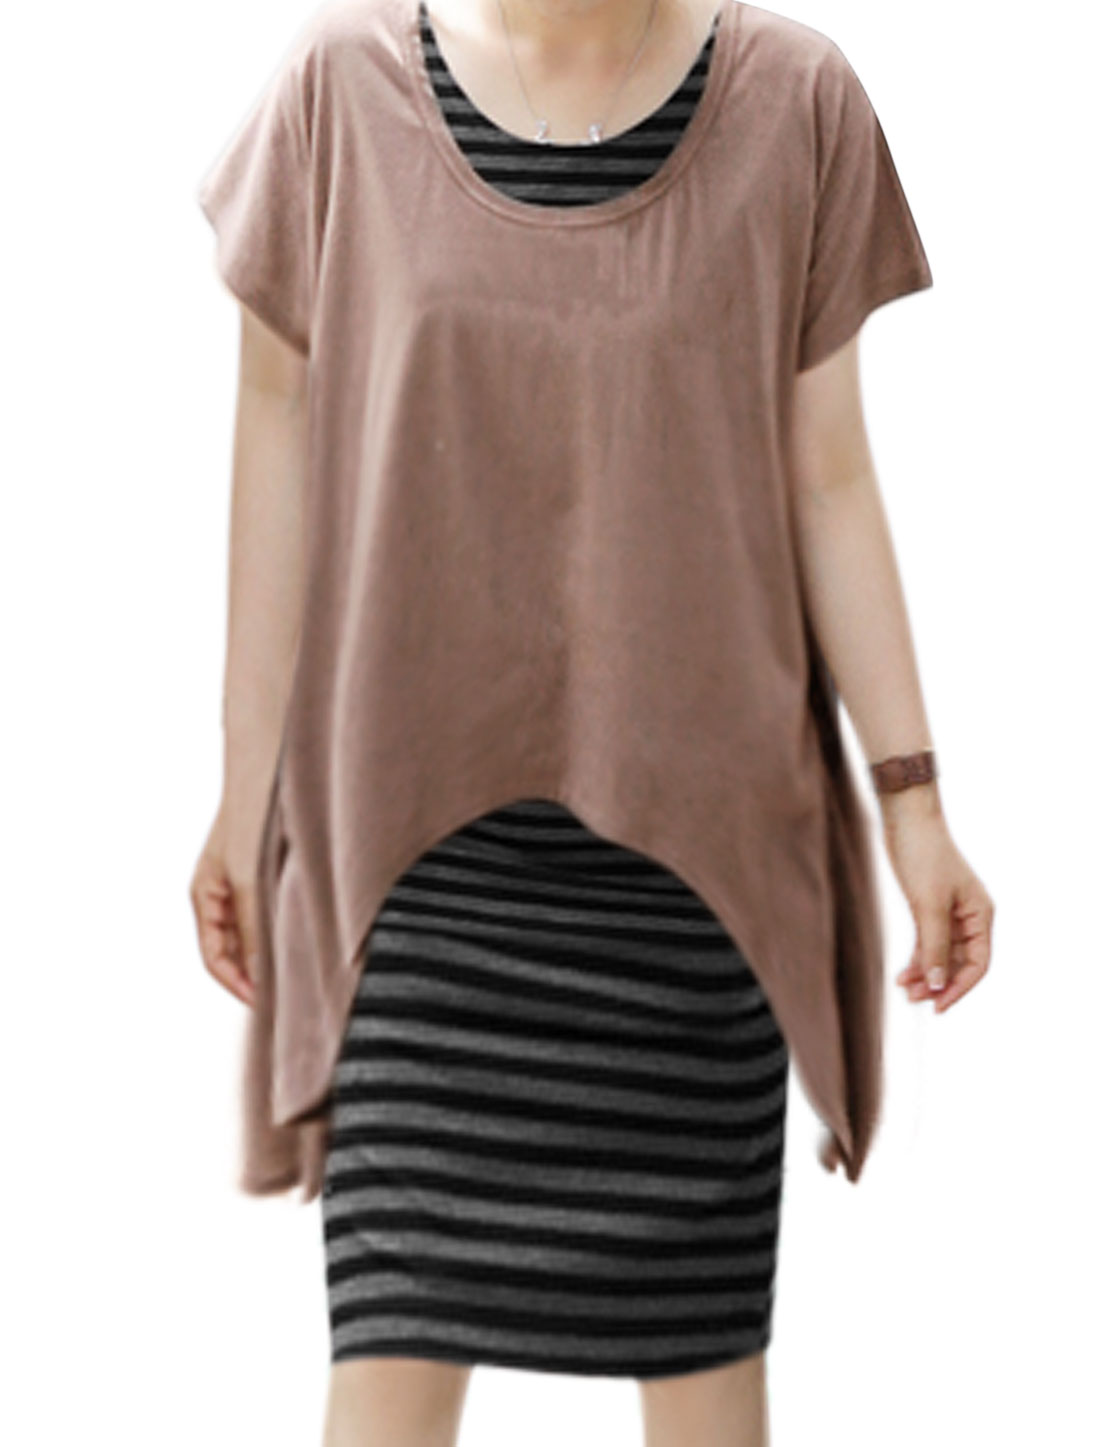 Woman Low High Hem Loose Top w Stripes Midi Dress Sets Brown Gray M